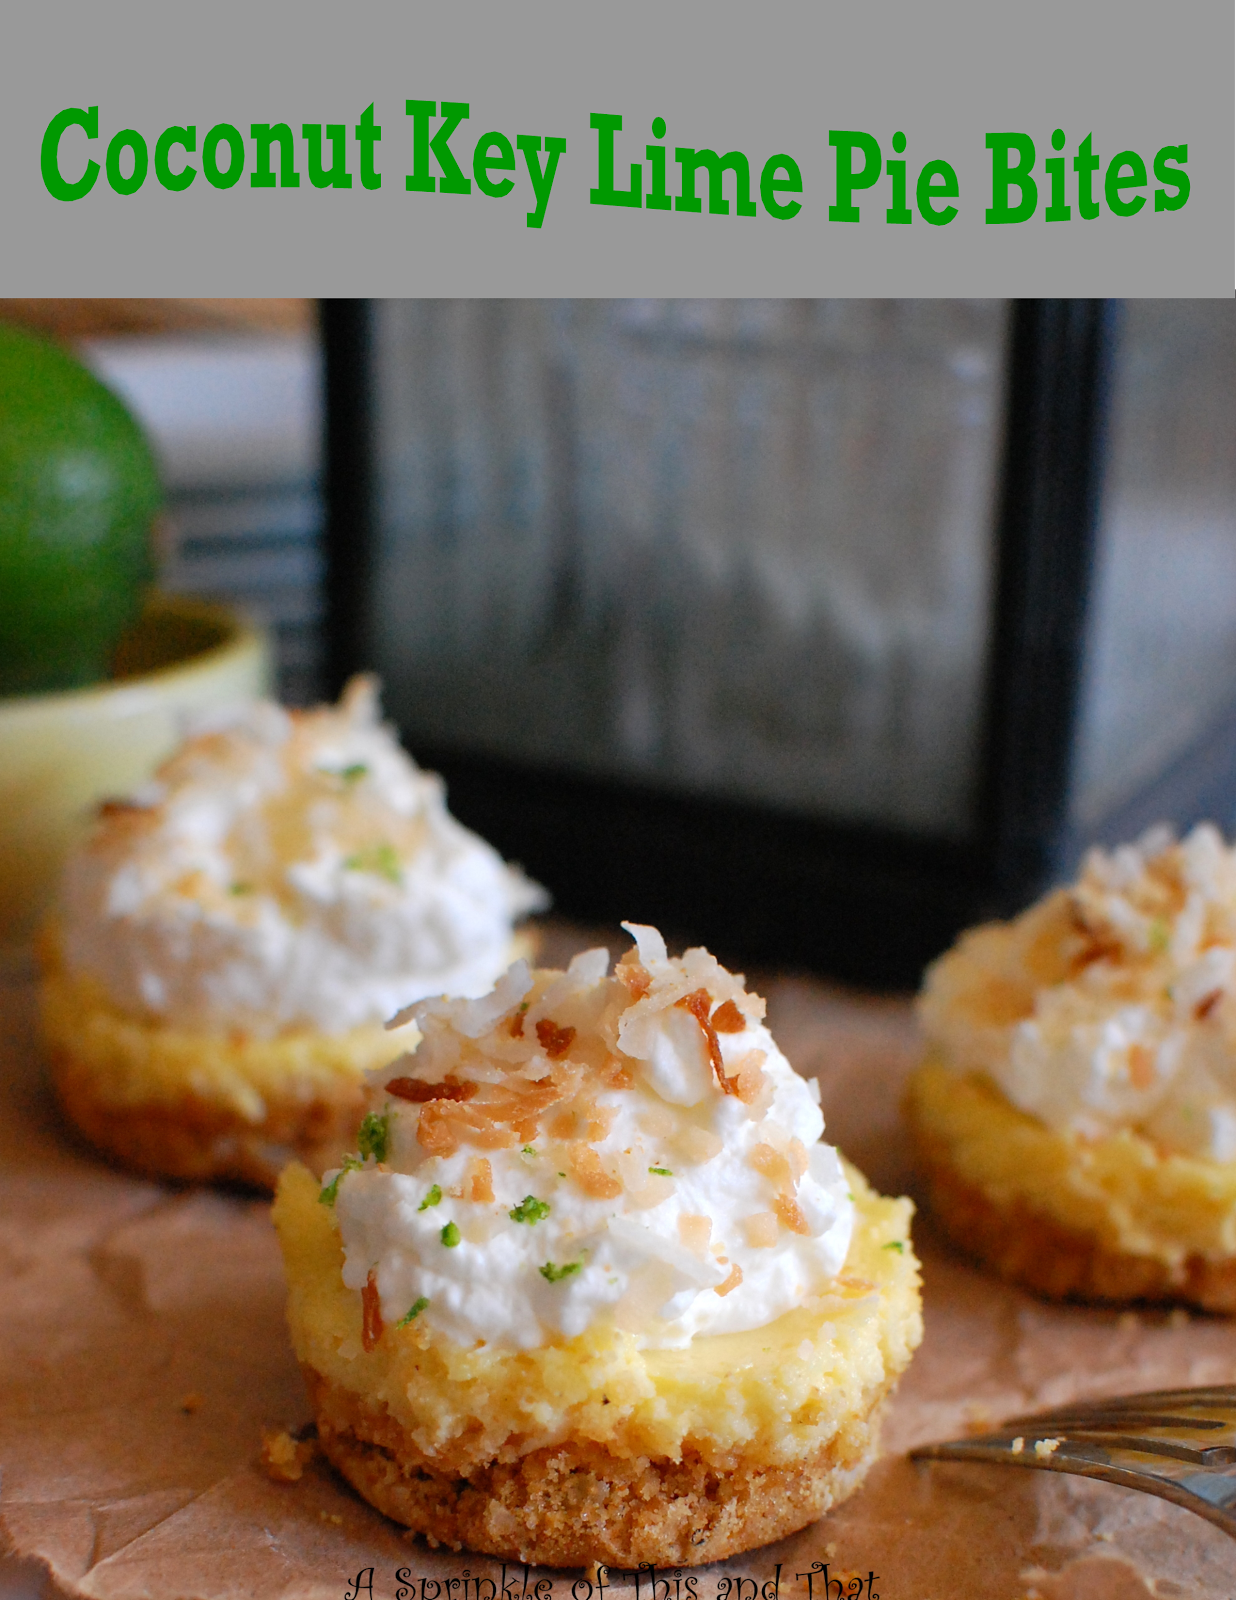 A Sprinkle of This and That: Coconut Key Lime Pie Bites | pies ...